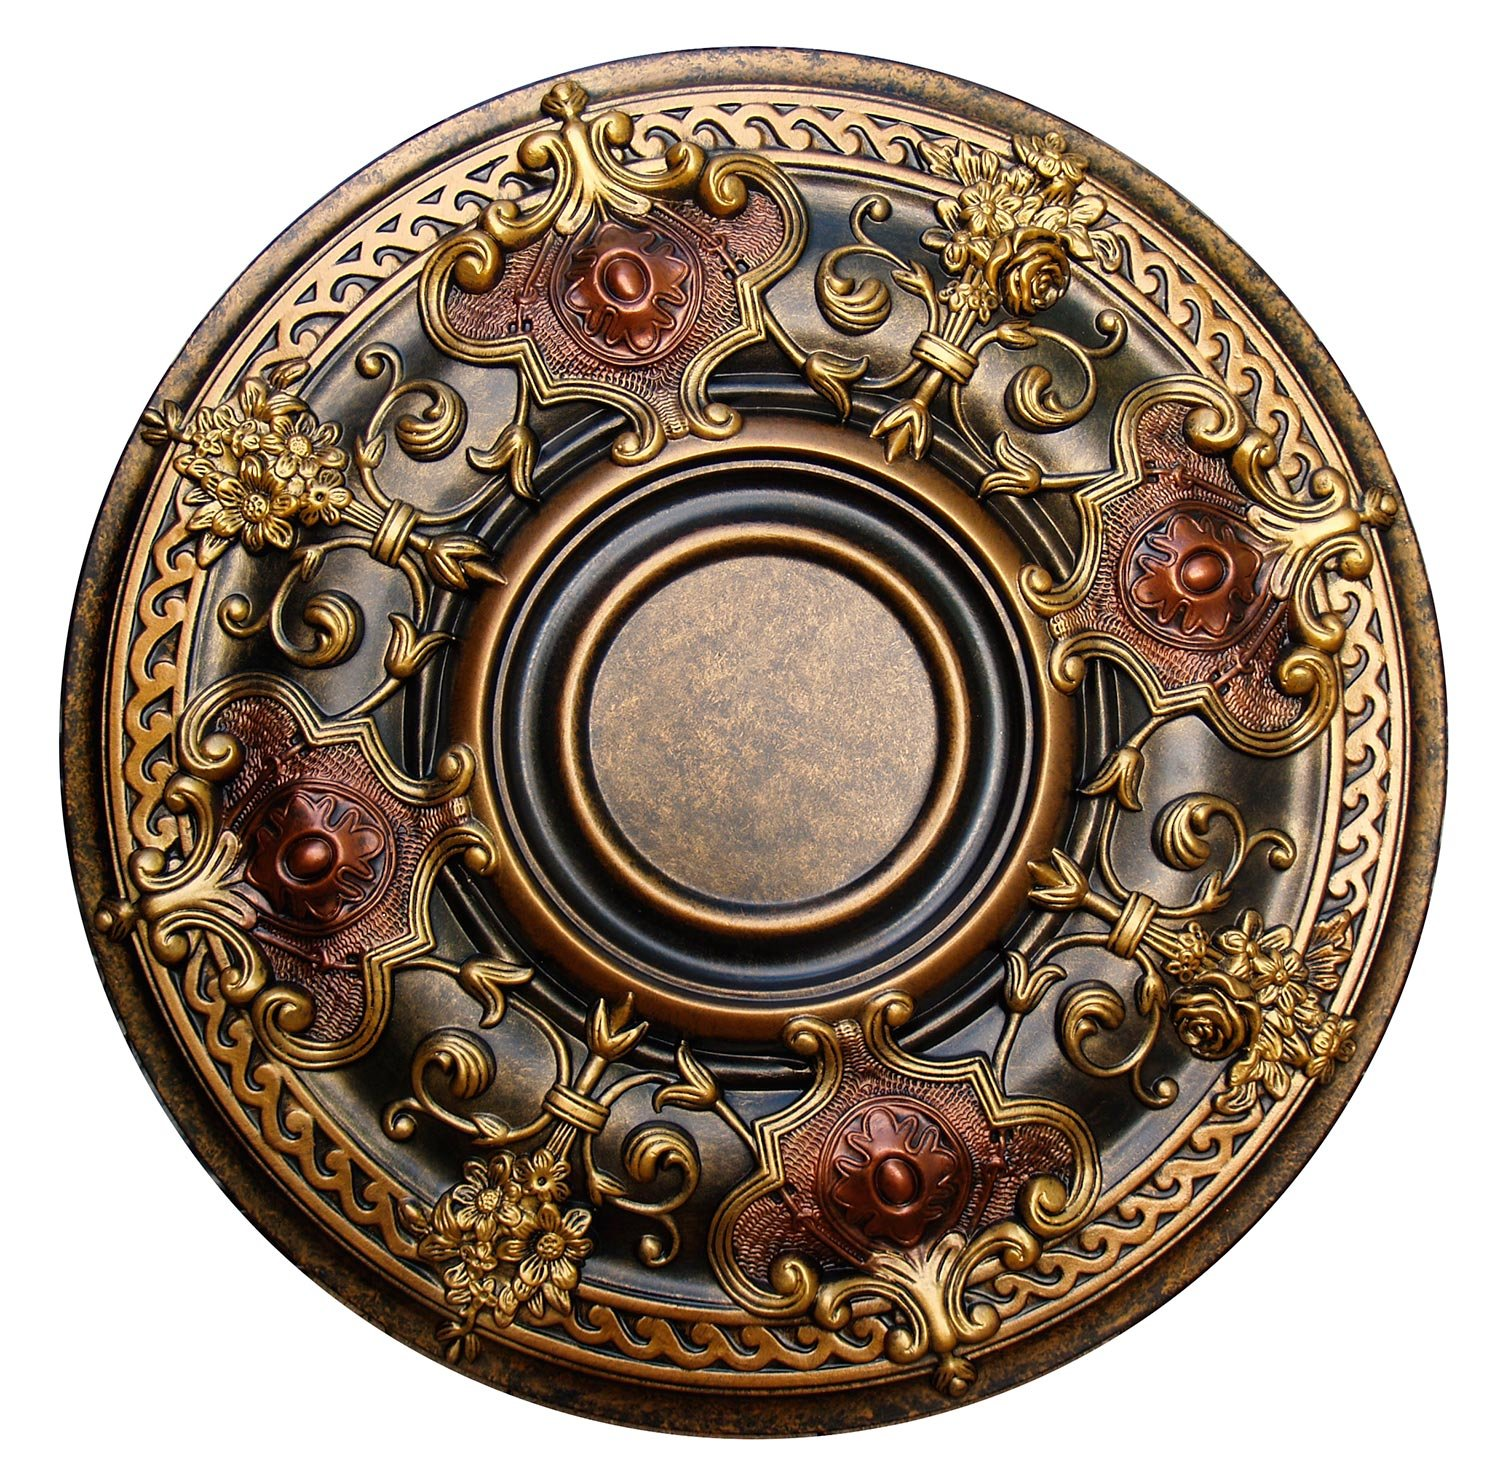 Fine Art Deco ''Shady Impression'' Hand Painted Ceiling Medallion 28-1/8 In. Finished in Bronze, Gold and Copper